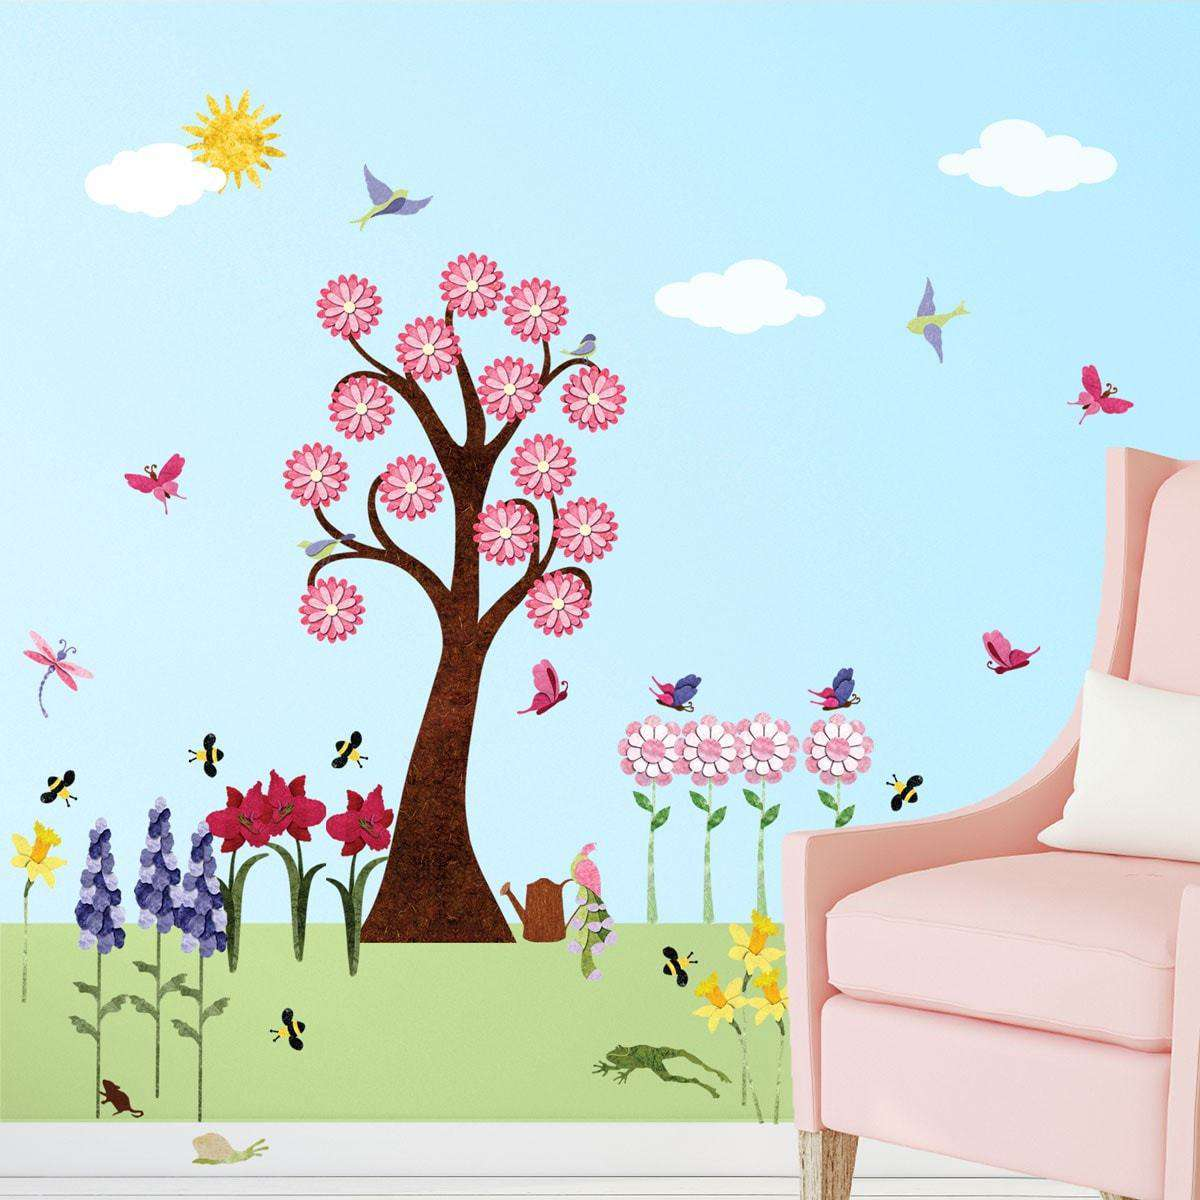 Flower Wall Decals For Girls Room Peel Stick Flower Stickers